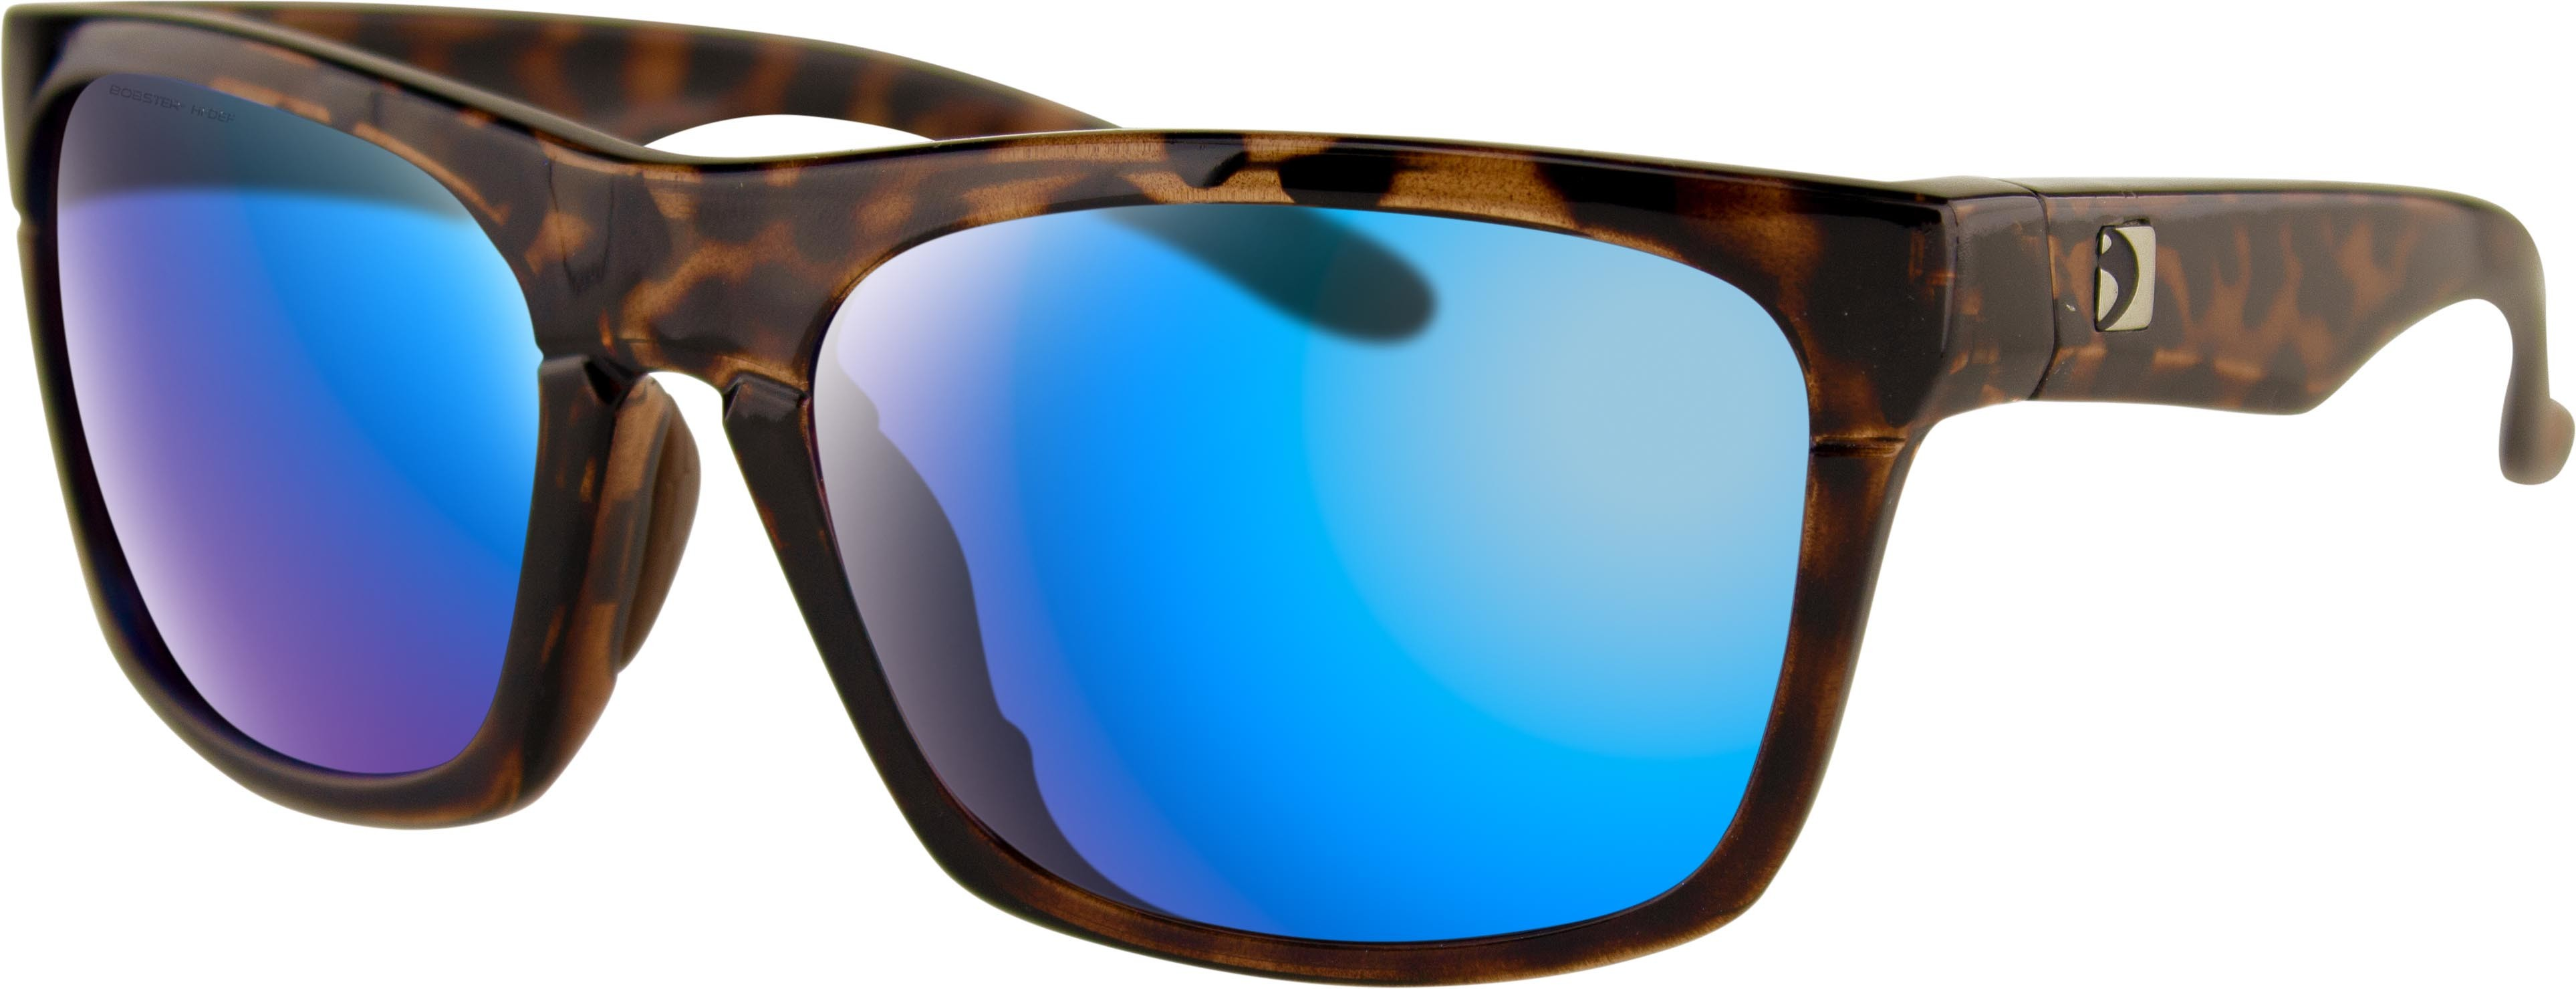 ROUTE SUNGLASSES BROWN TORT W/PUR HD/LIGHT BLUE REVO MIR